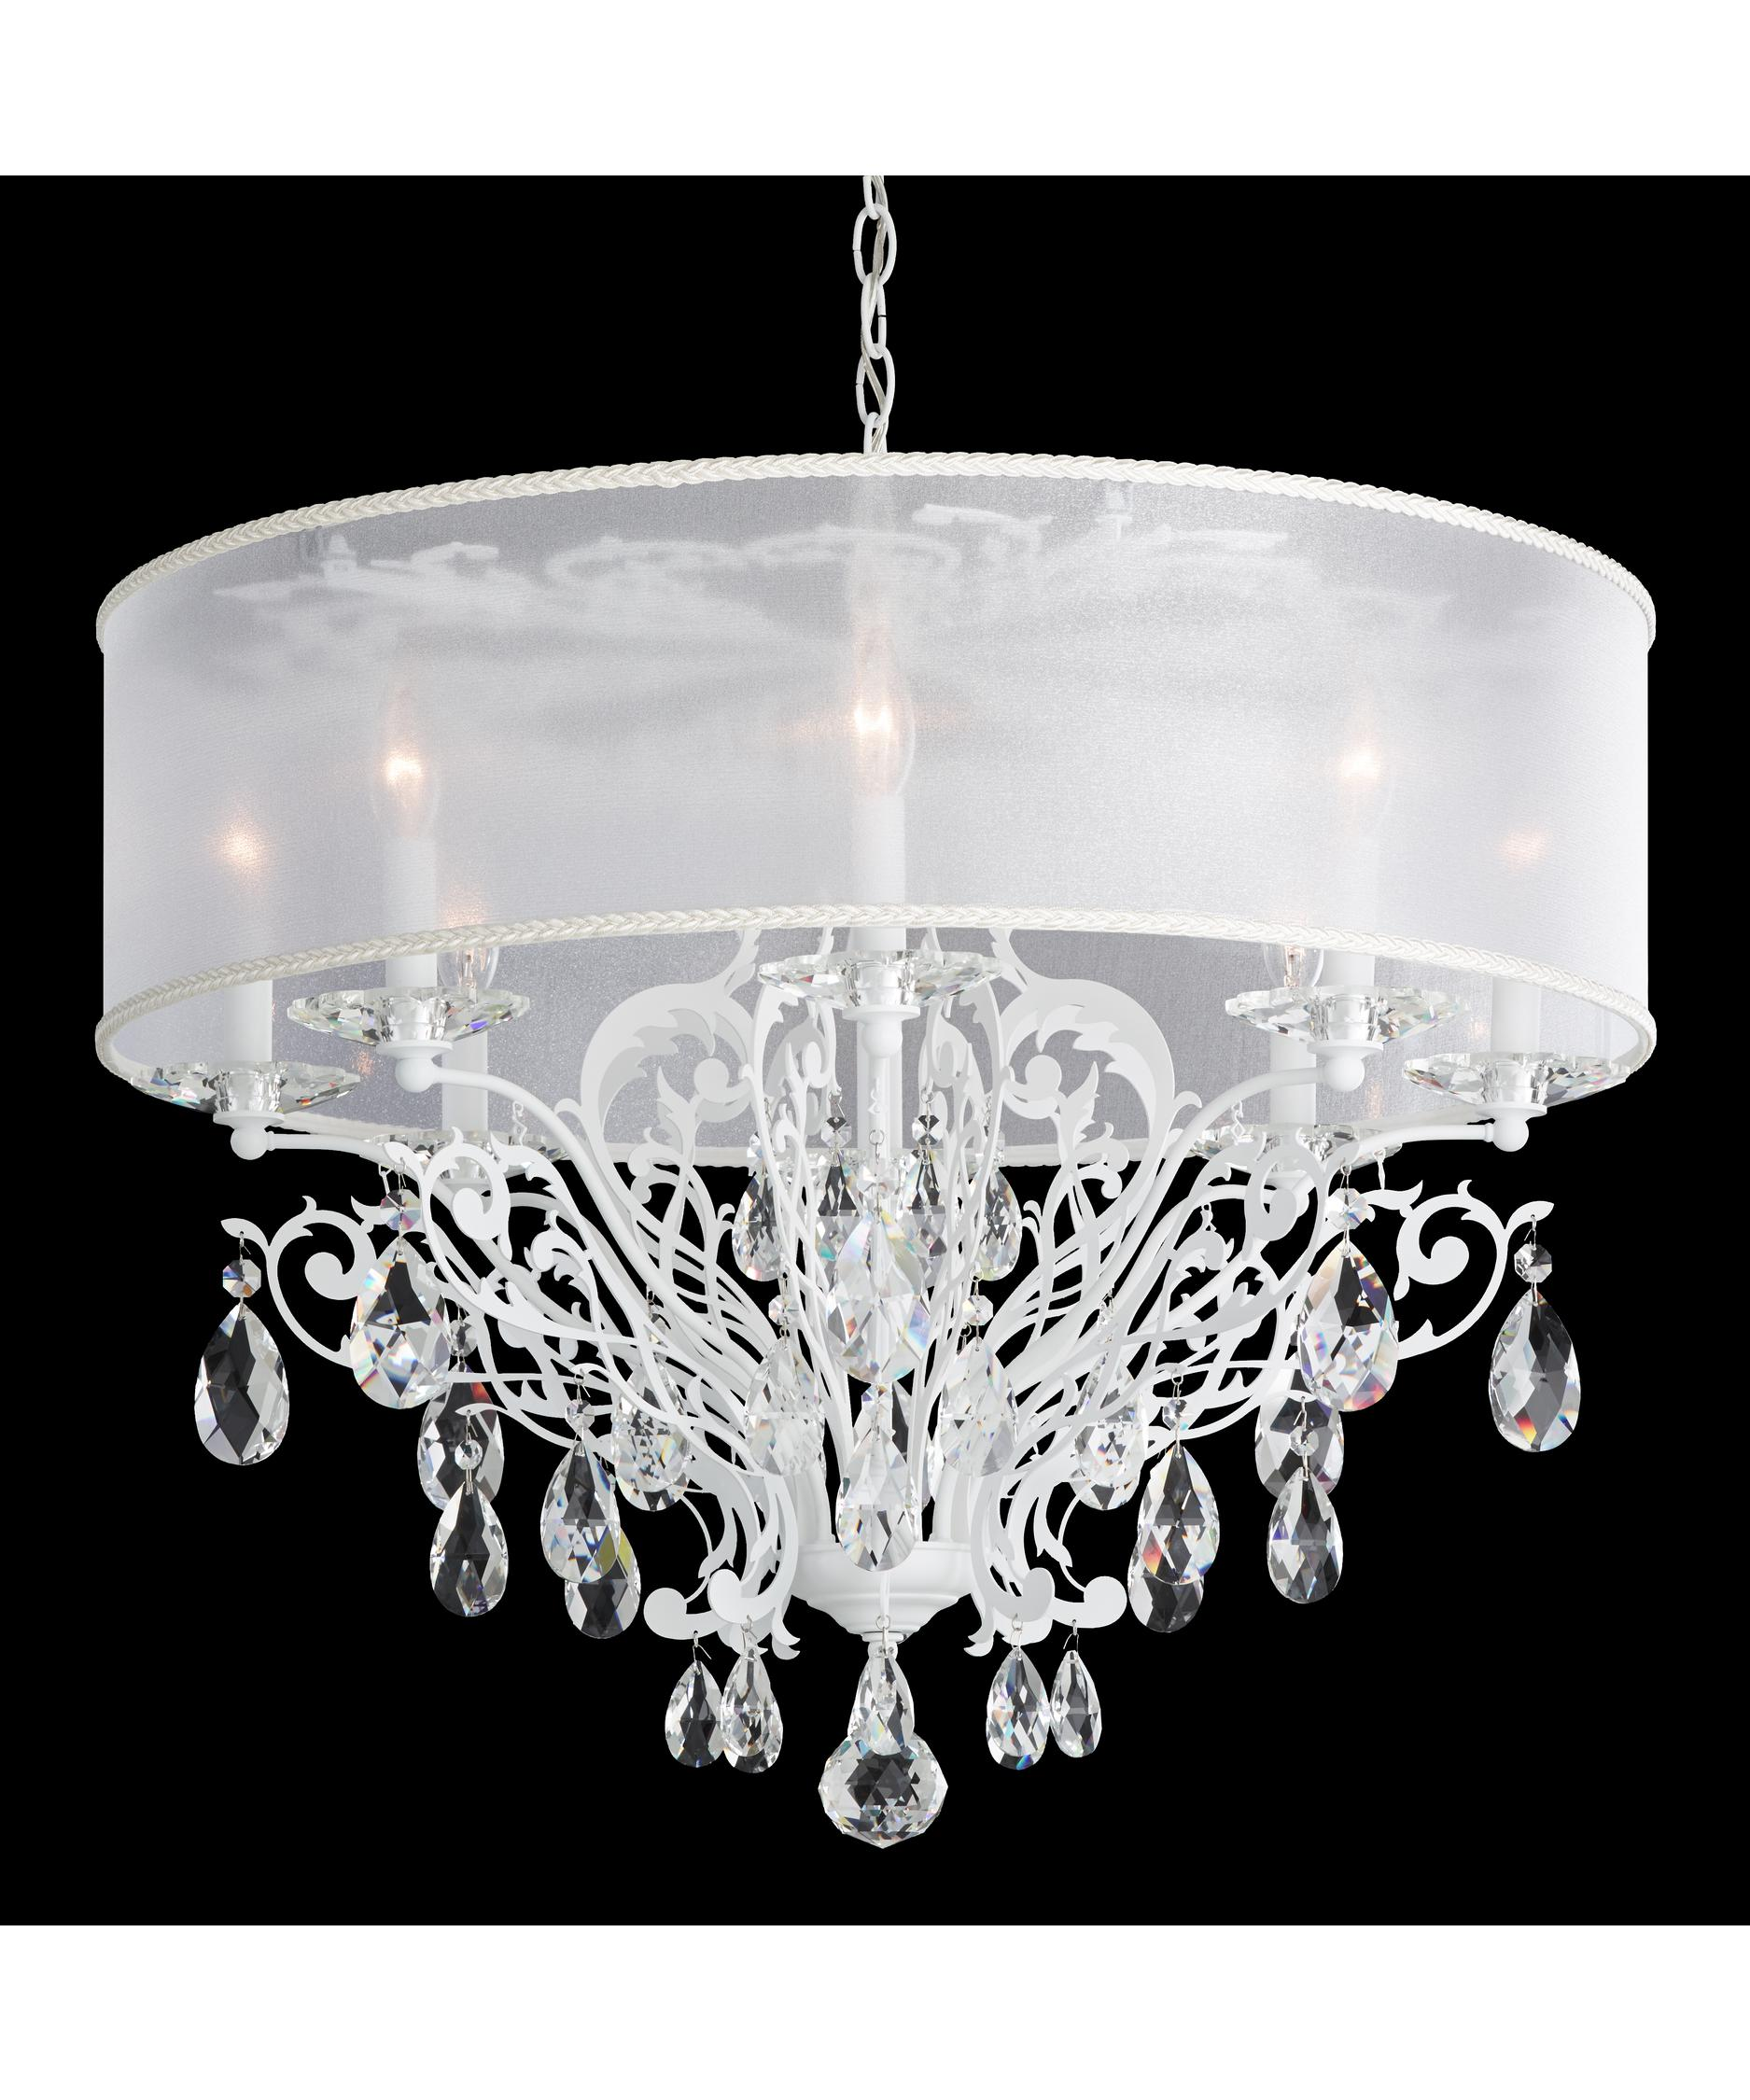 image without options - Schonbek Chandelier